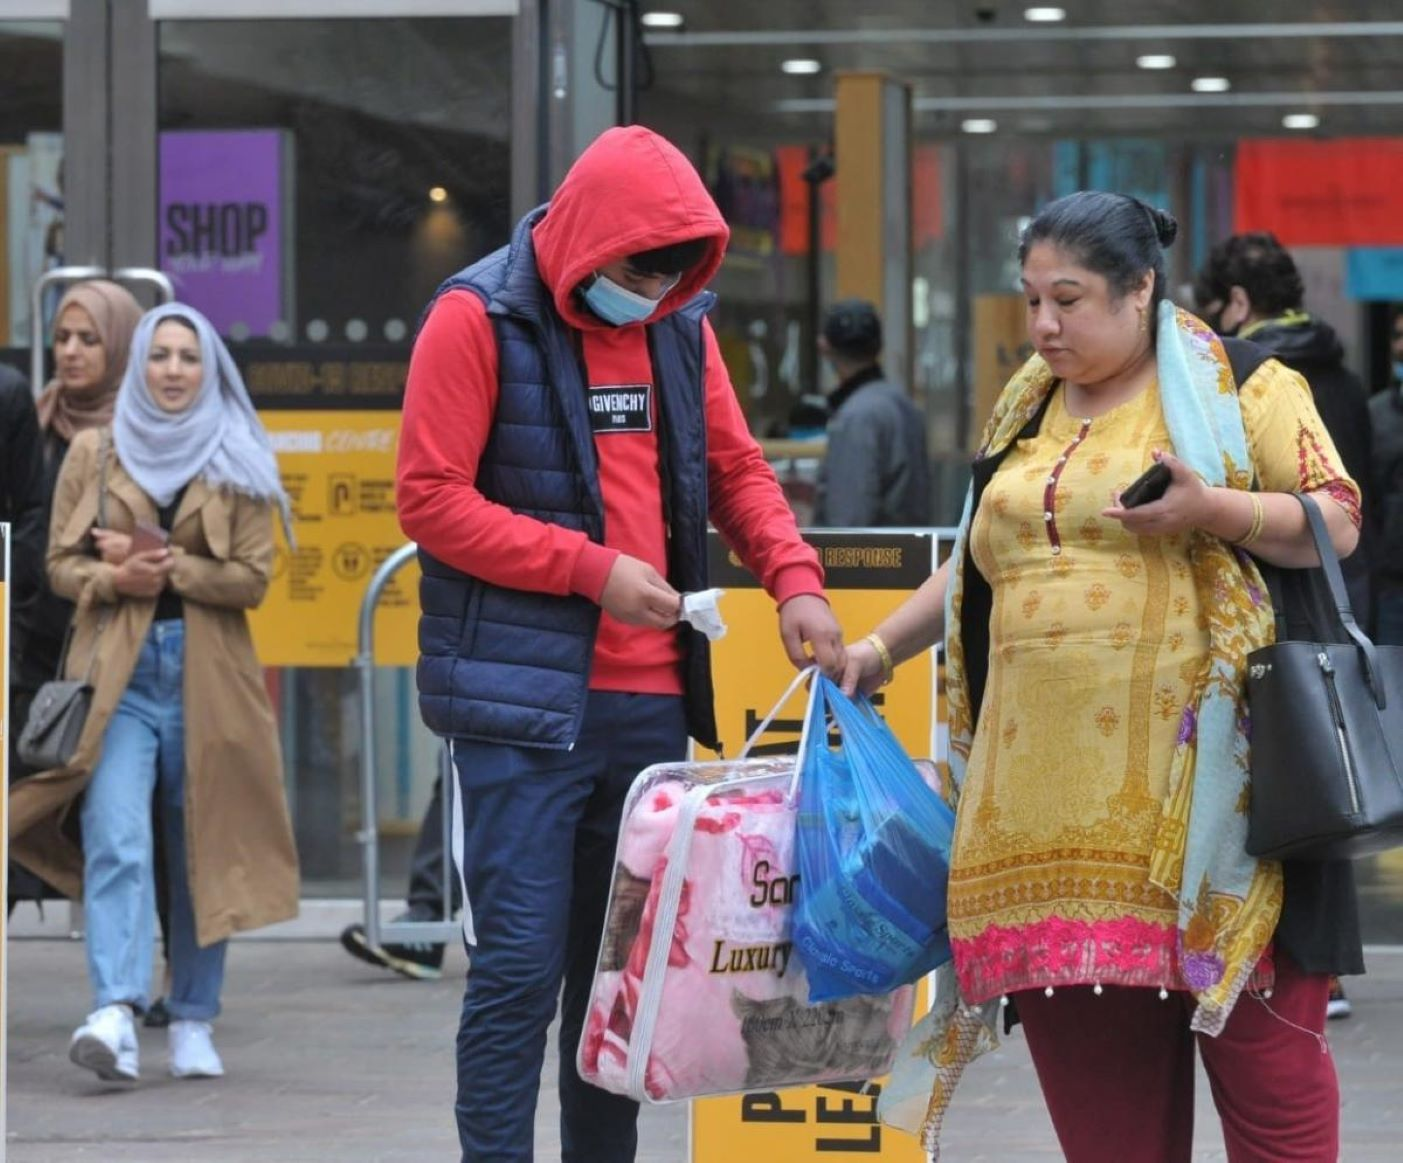 Bradford Businesses hope for Bank Holiday Boost